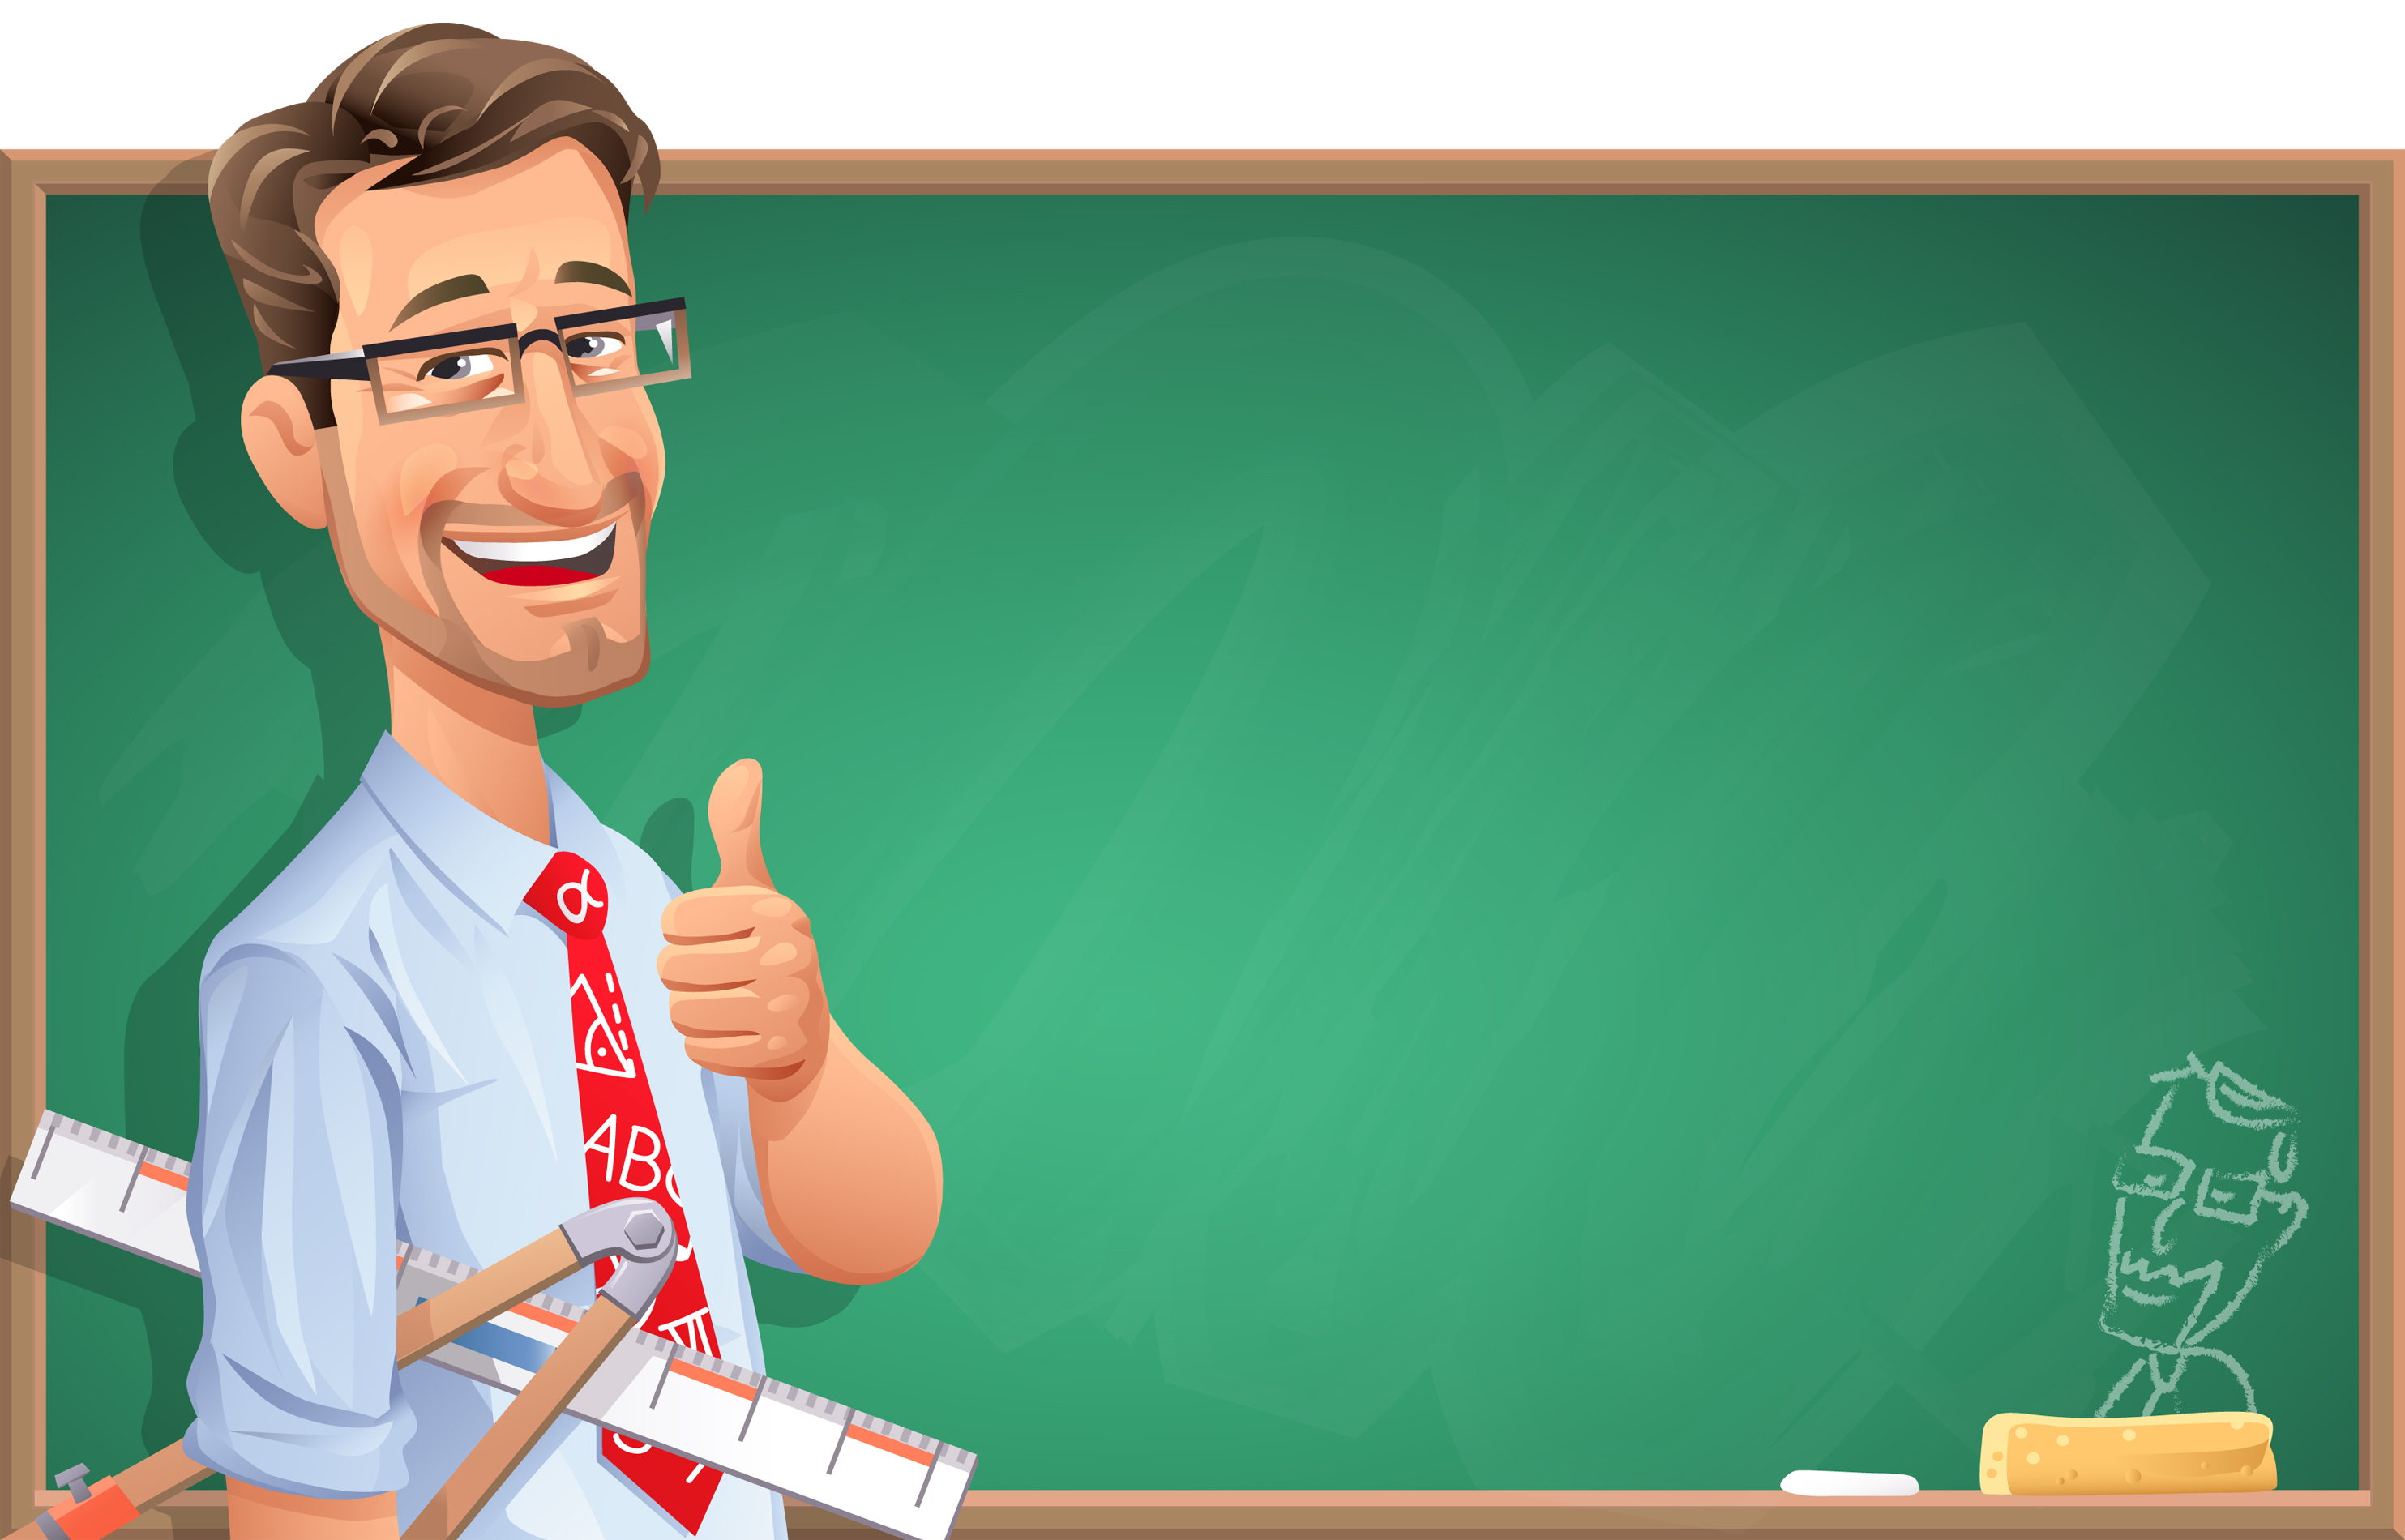 PODCAST: Five Steps to Becoming a Better Teacher - Dr. Christian Conte